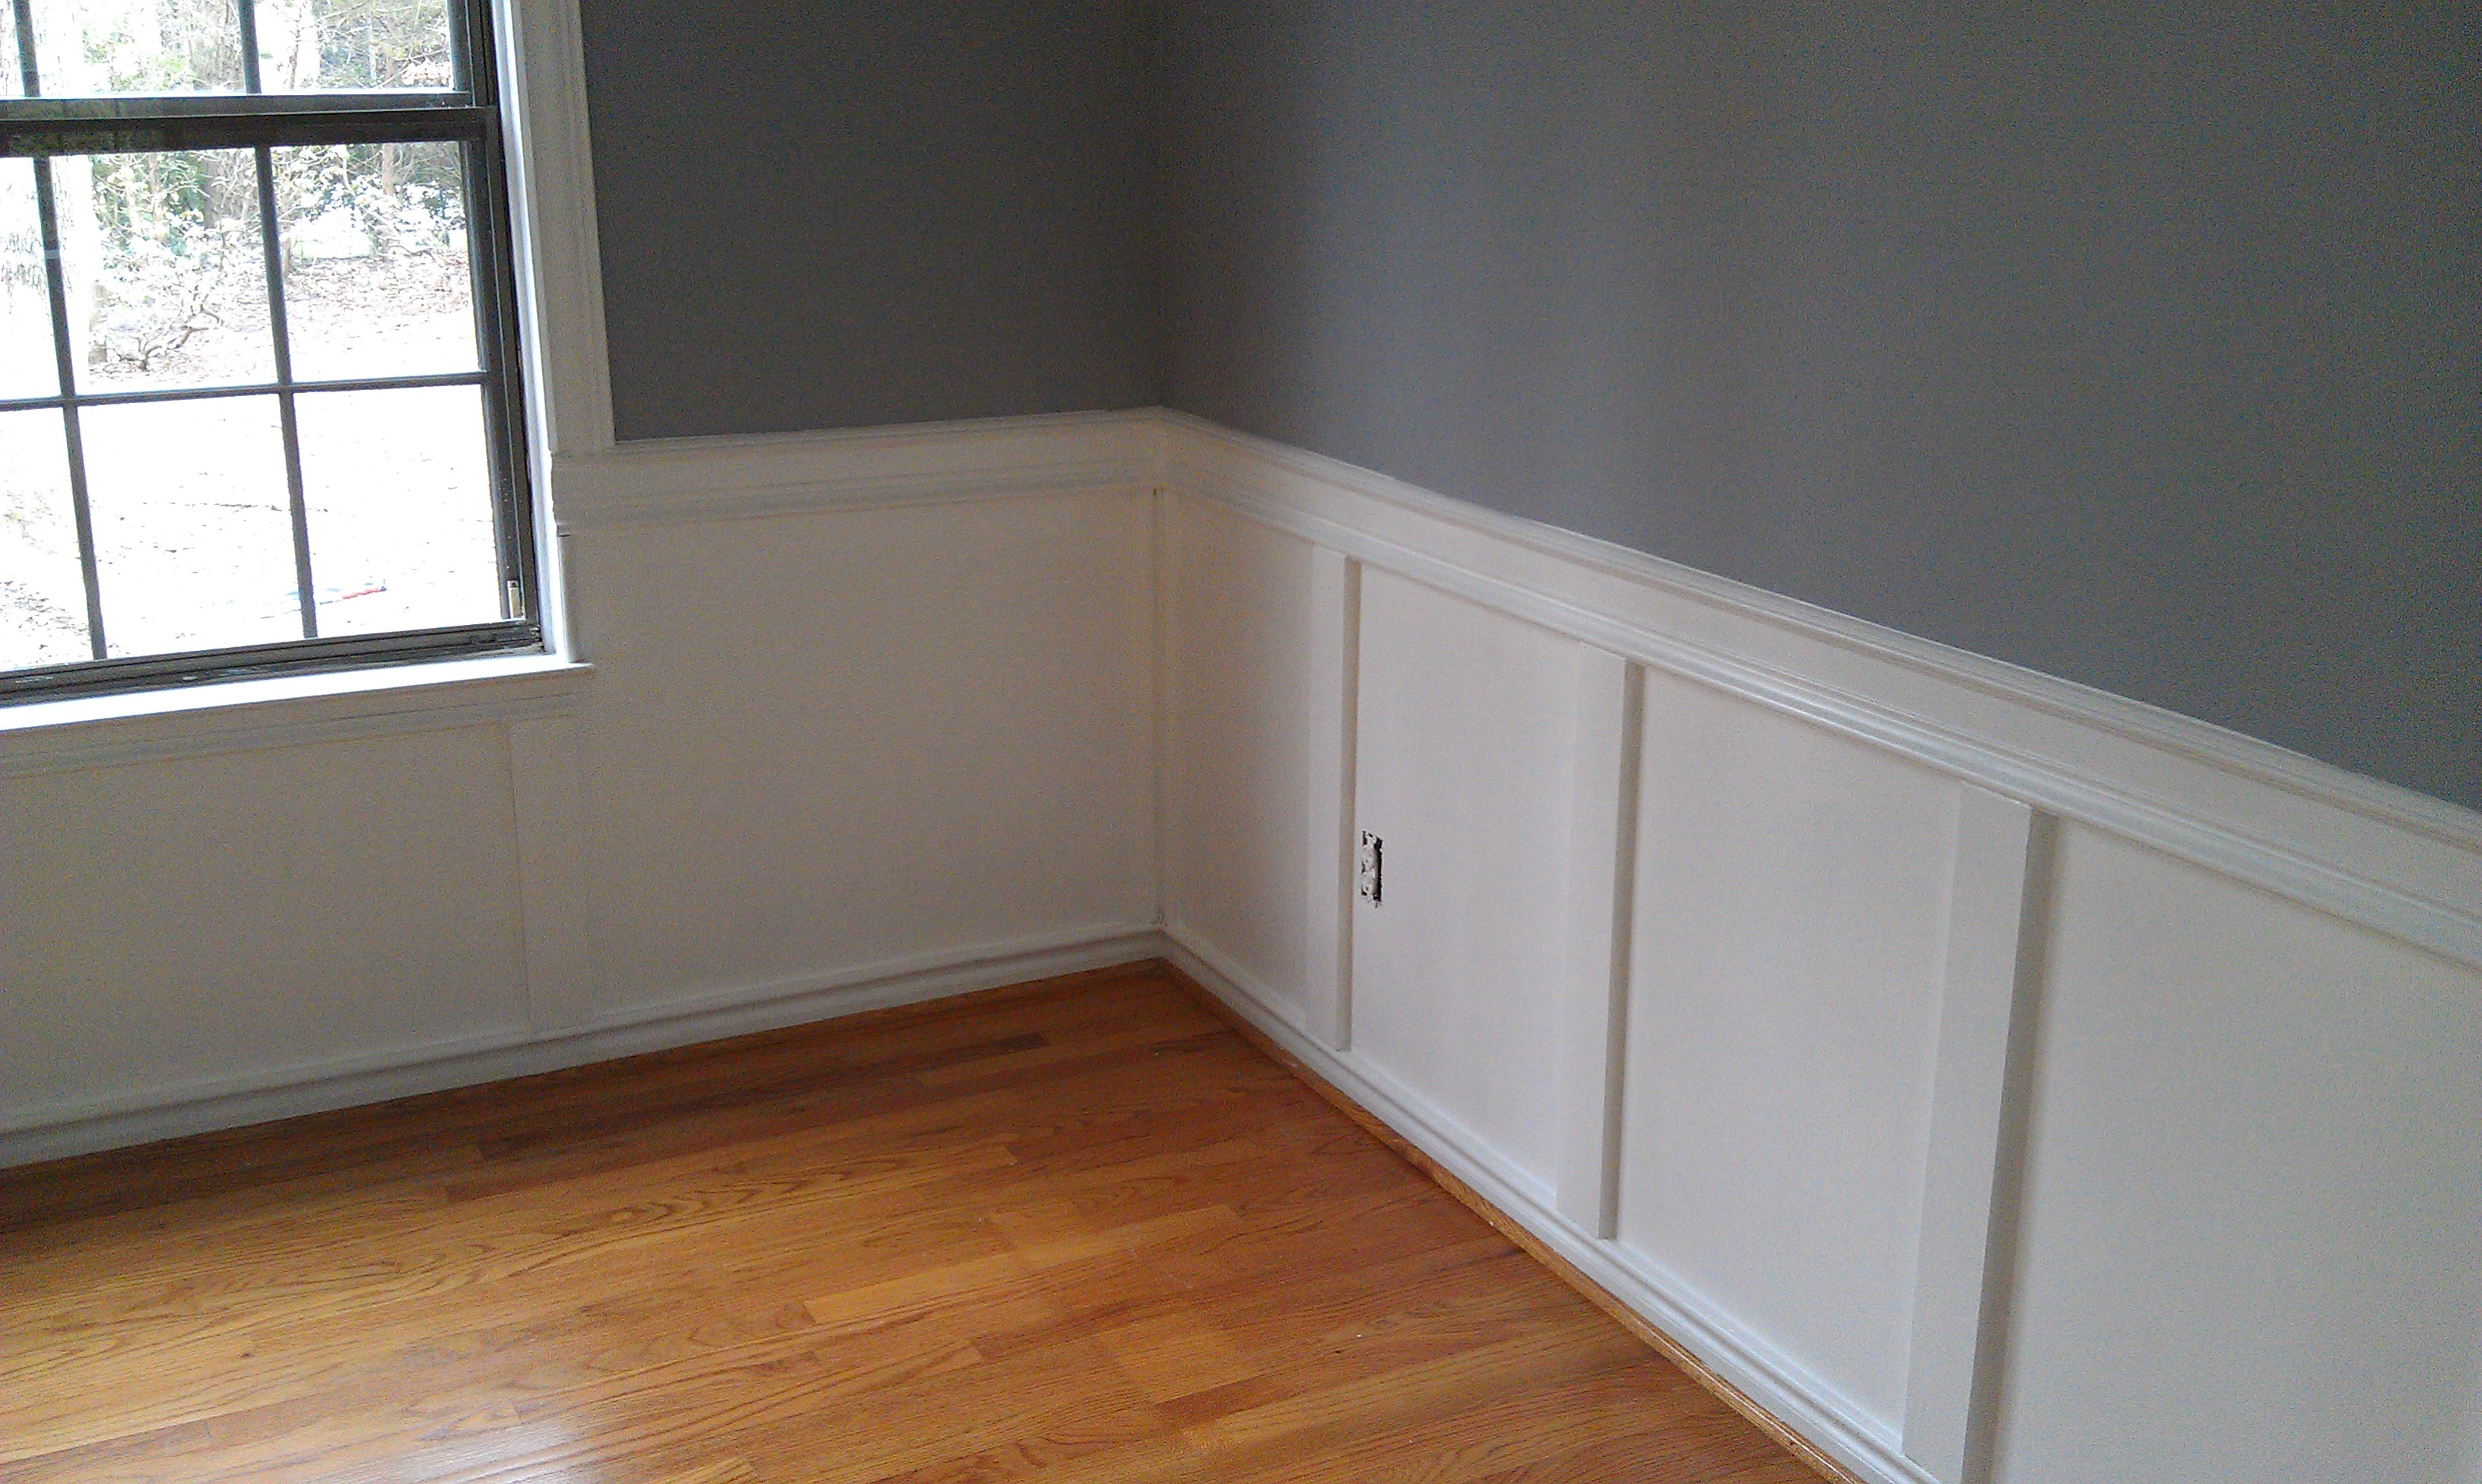 wainscoting | Sophia Rae Home Furnishings